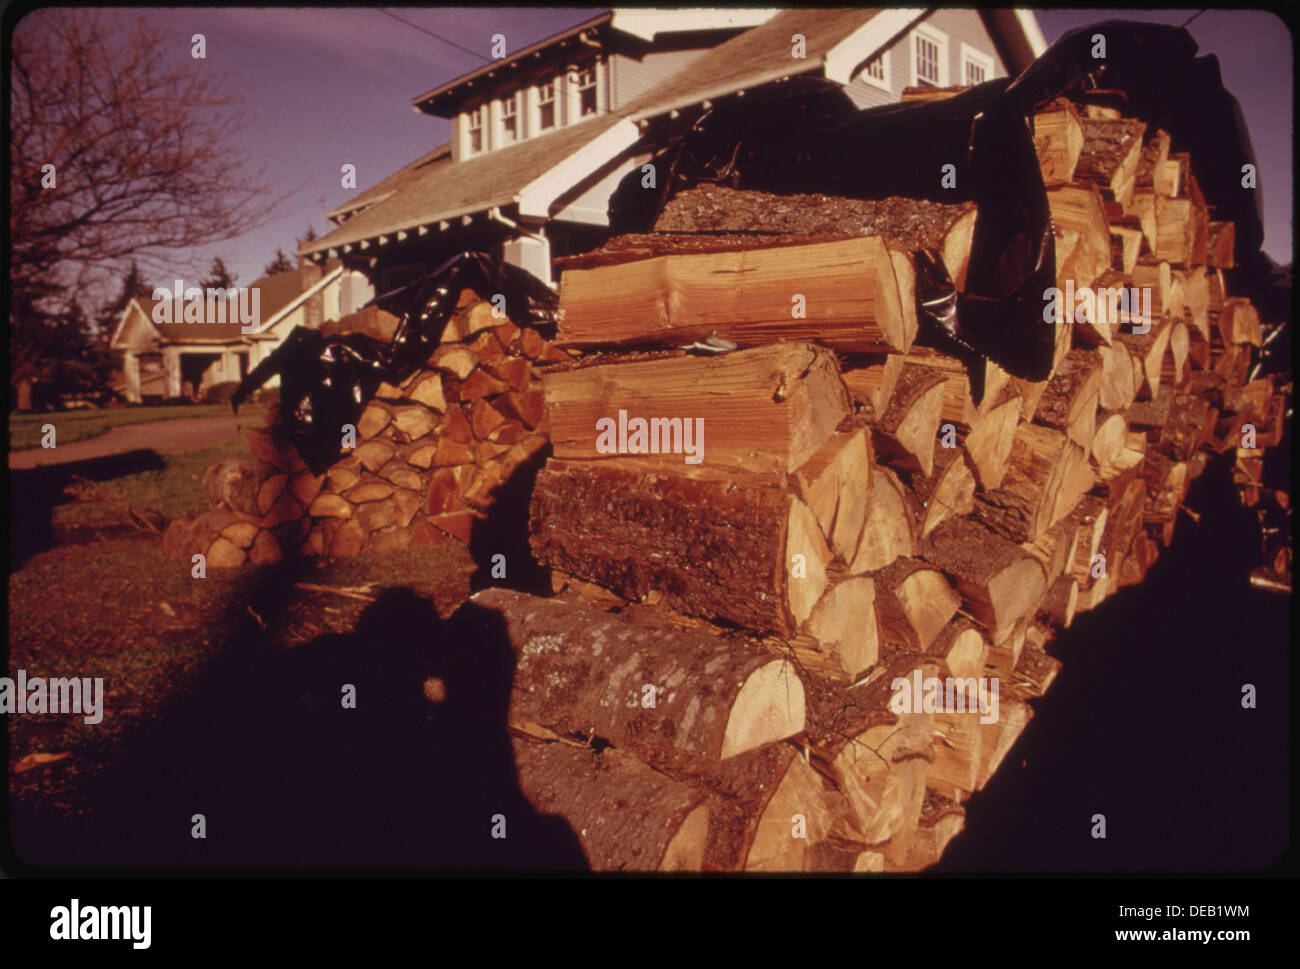 UNTIL THE FUEL CRISIS IT WAS VERY UNUSUAL TO NOTICE WOOD PILED ON FRONT LAWNS SUCH AS THIS STACK. PRICES FOR PRECUT 555454 - Stock Image